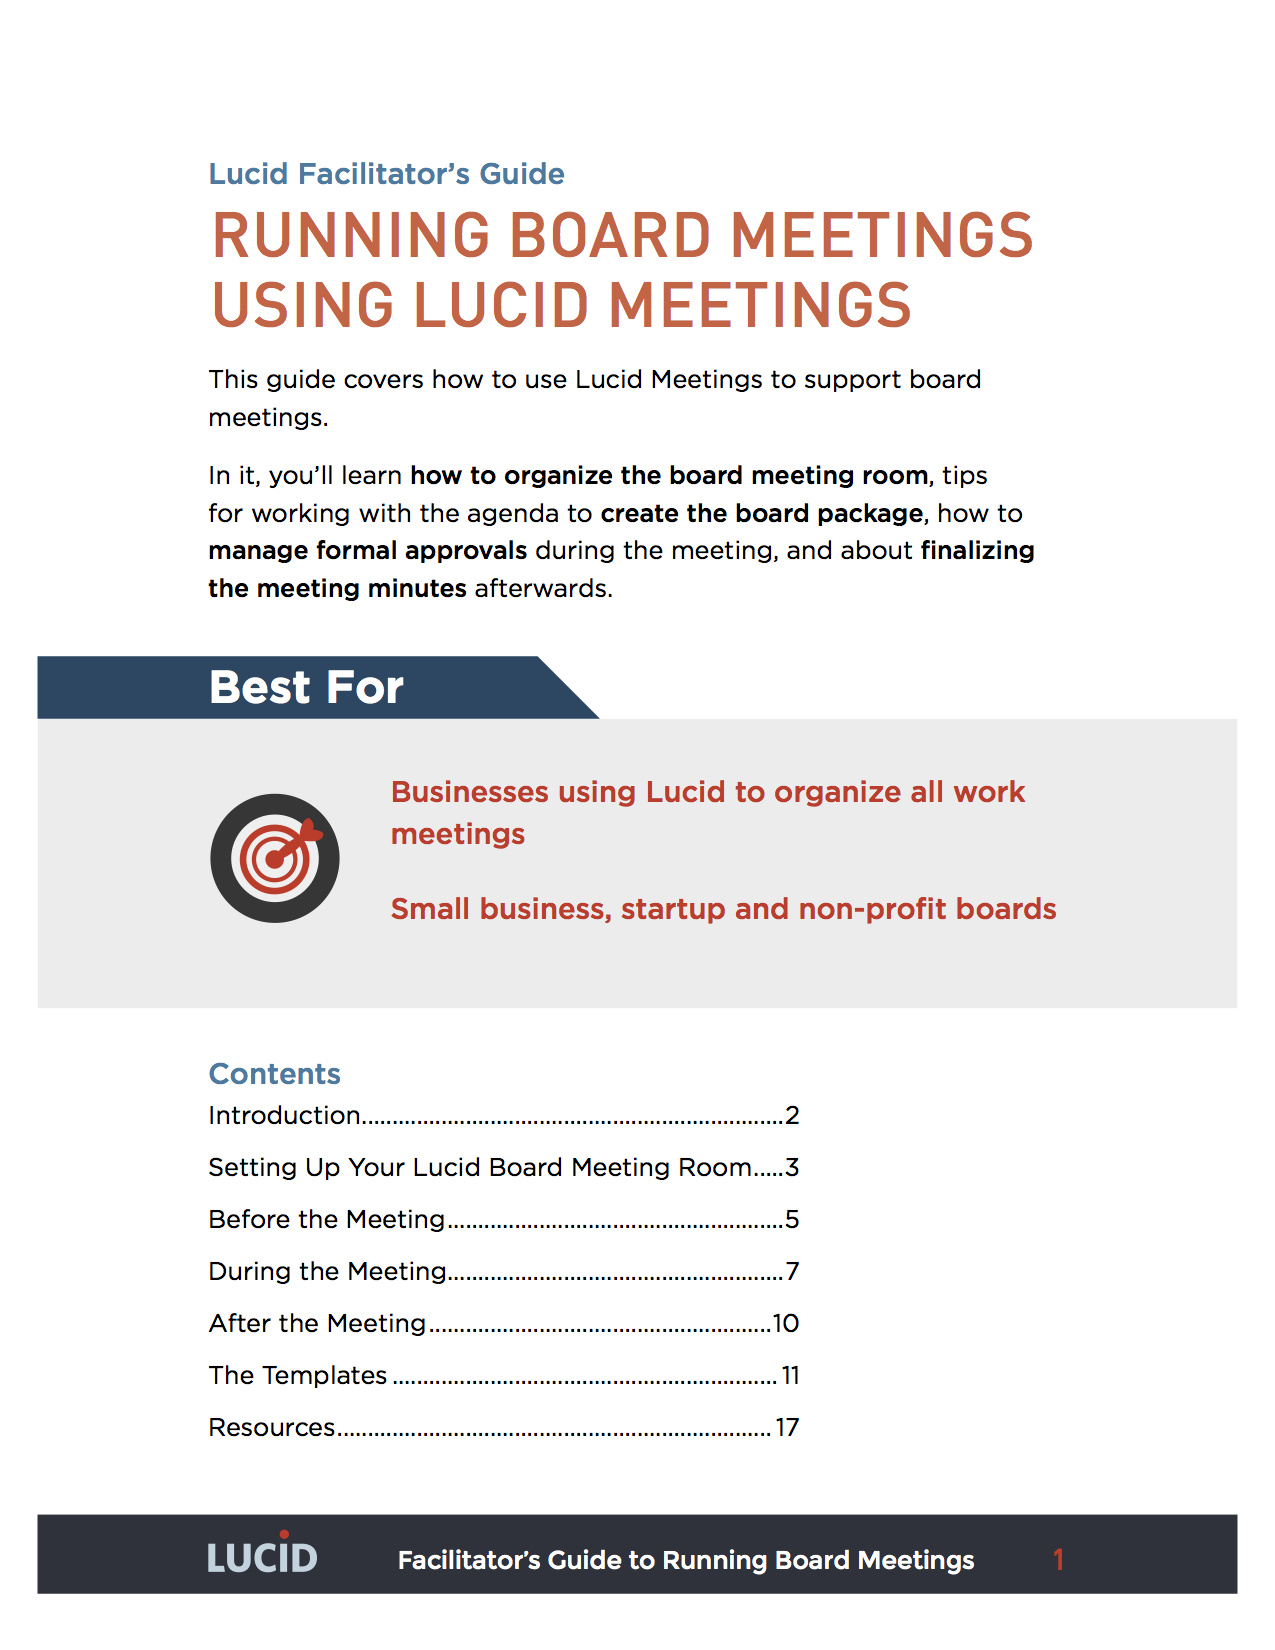 Lucid-Board-Meetings-Facilitator-Guide.png